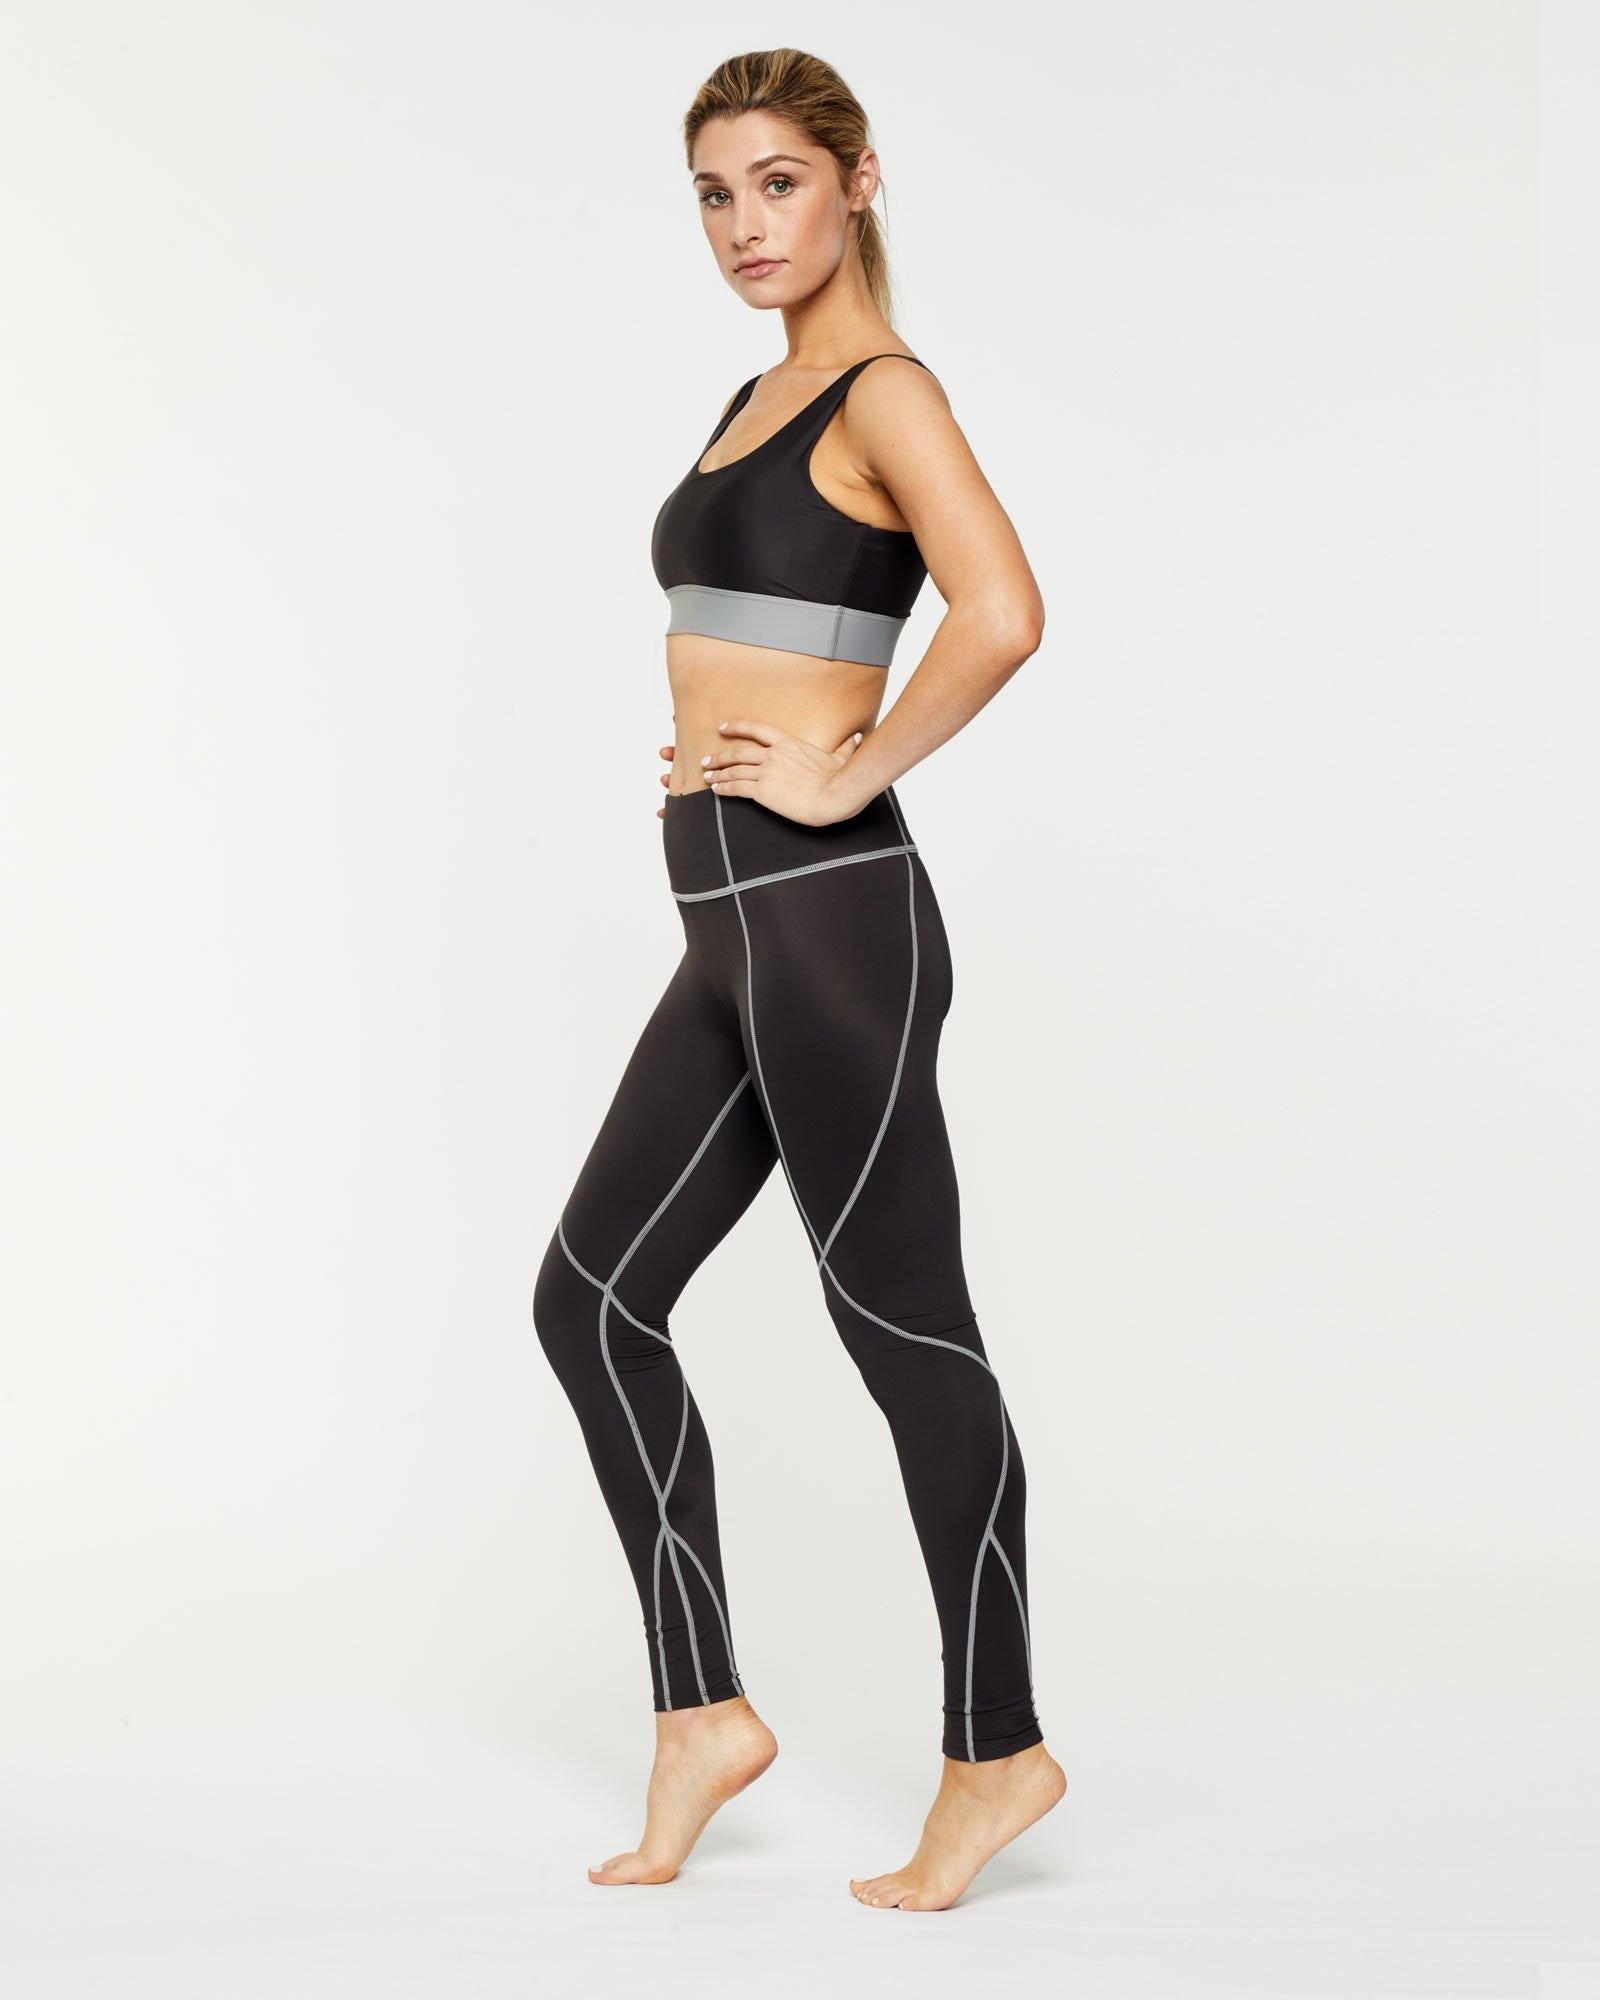 Steely PECTORALIS bra TOP WITH CONTRAST UNDER BUST BAND, WORN WITH VASTUS MID-WAIST LEGGING SIDE VIEW